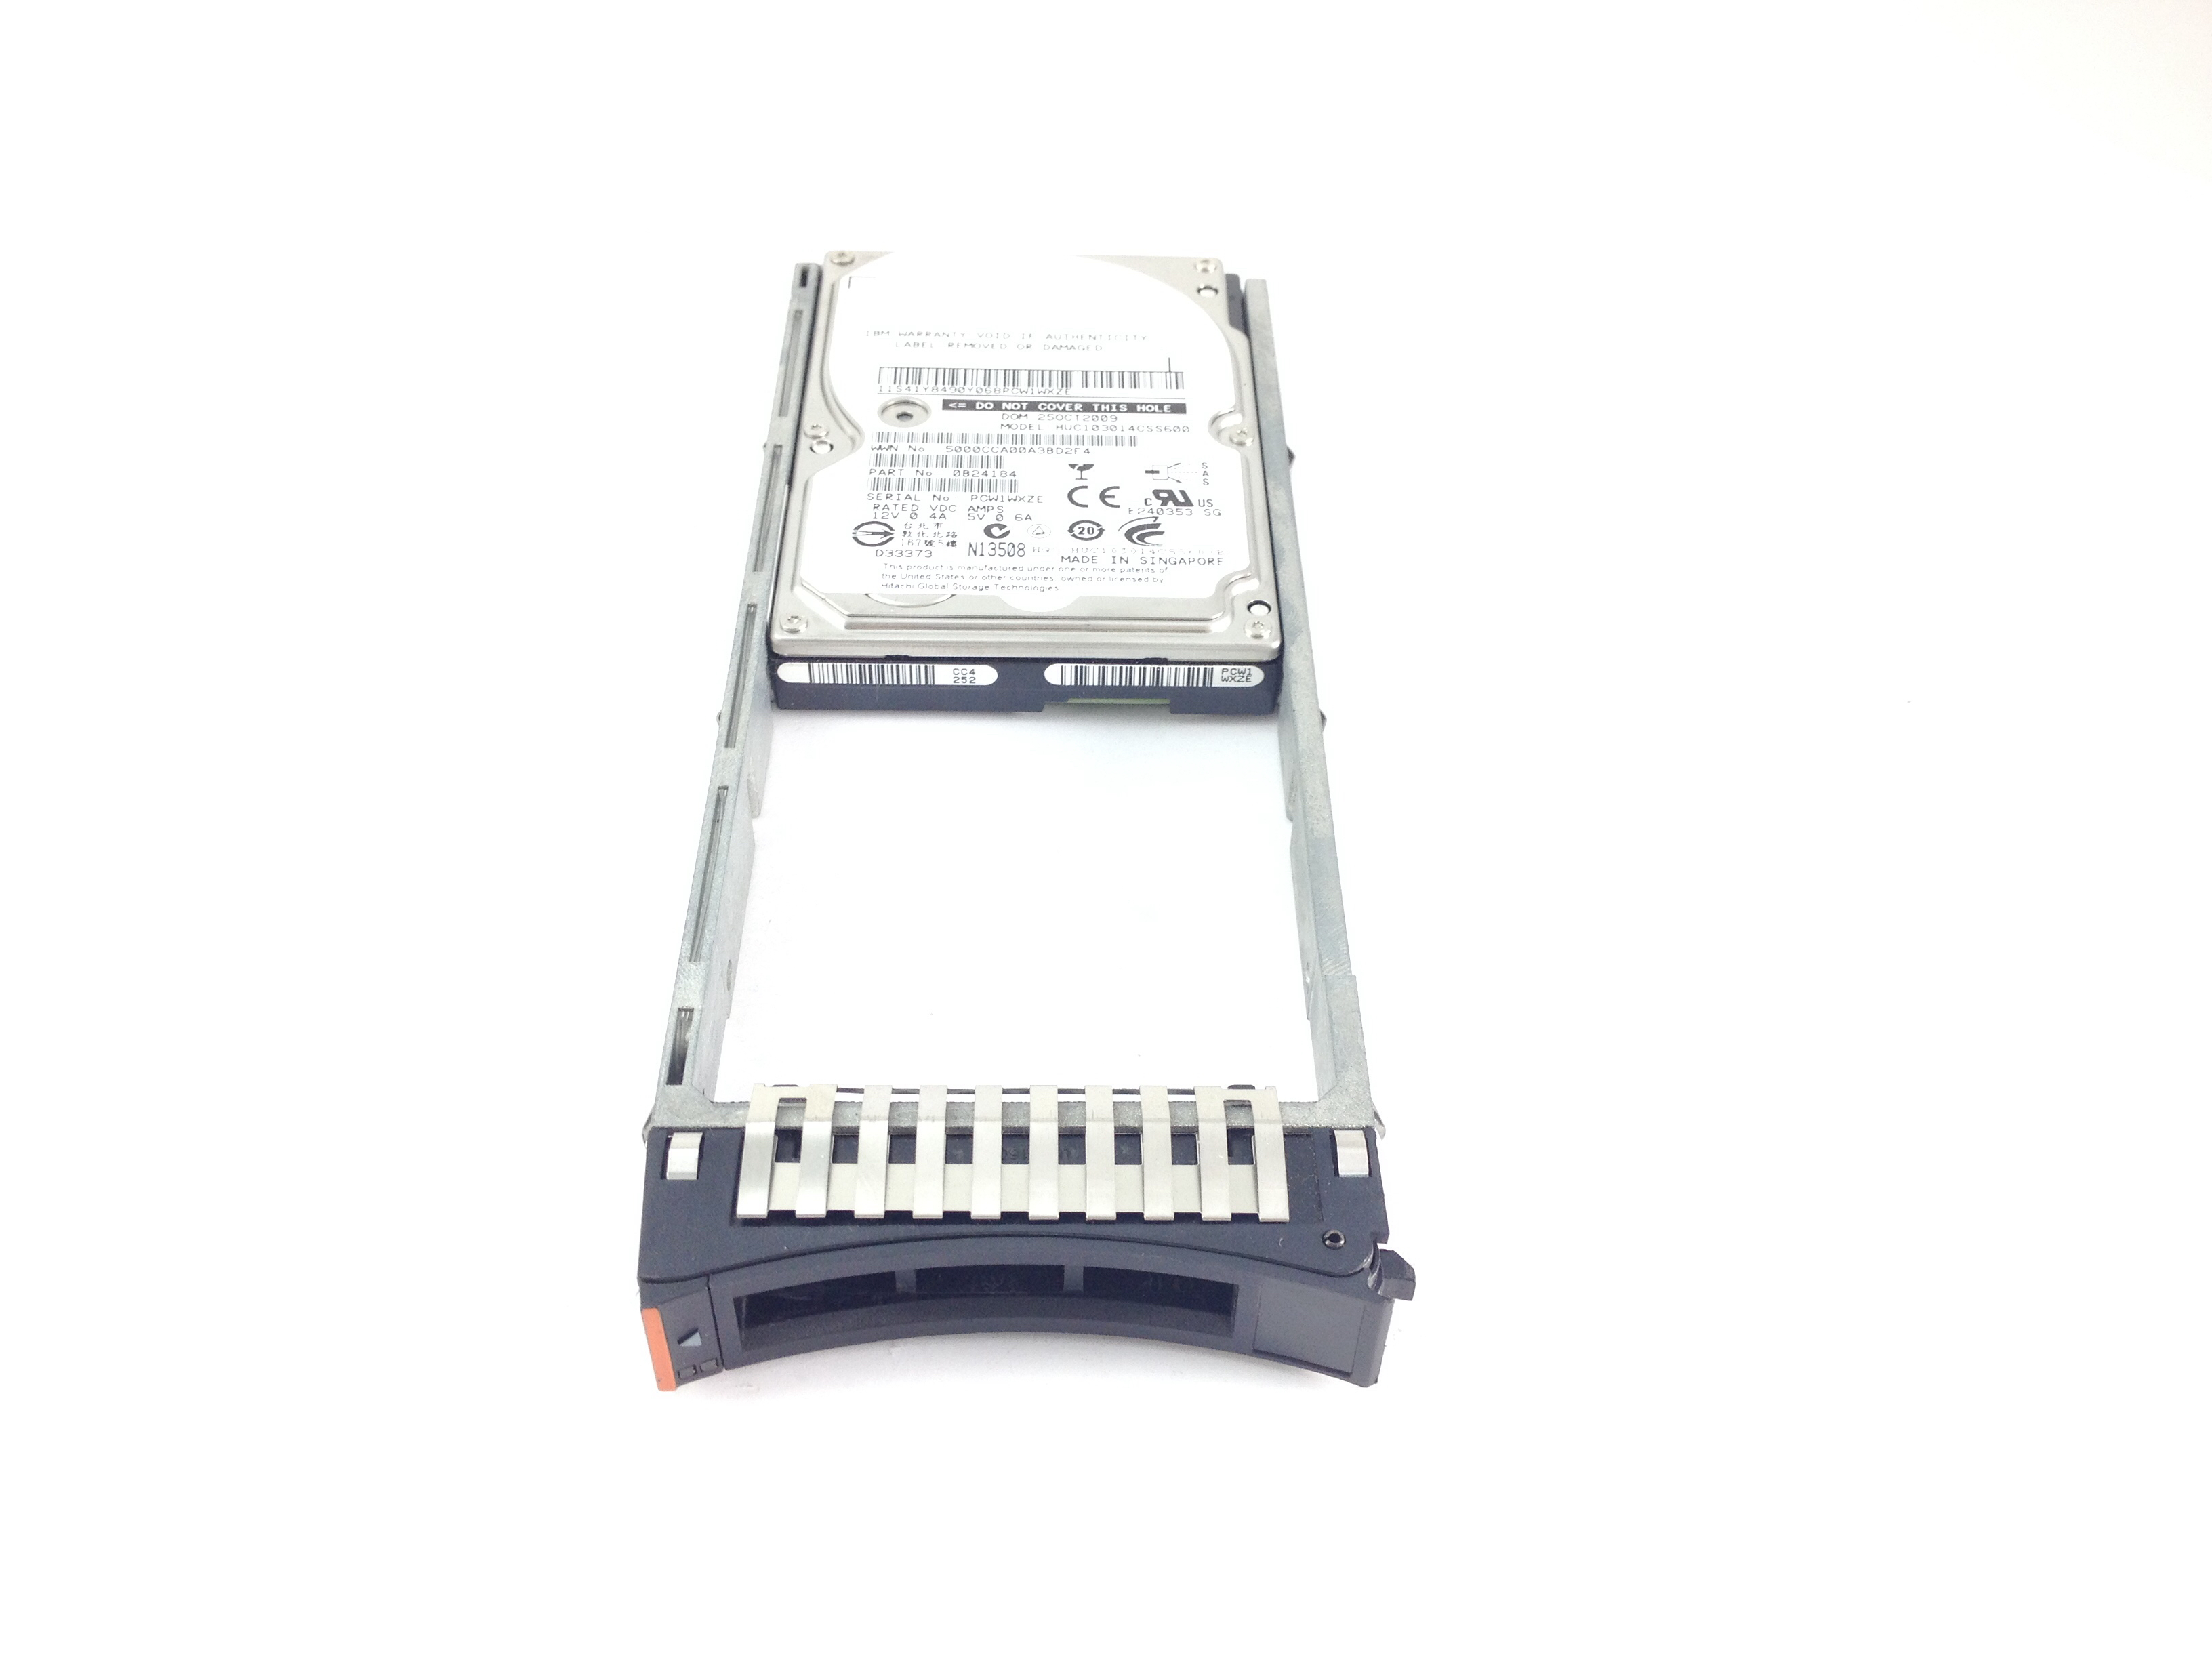 IBM HITACHI 146GB 10K SAS 2.5'' HARD DRIVE W/ TRAY (26K5267)